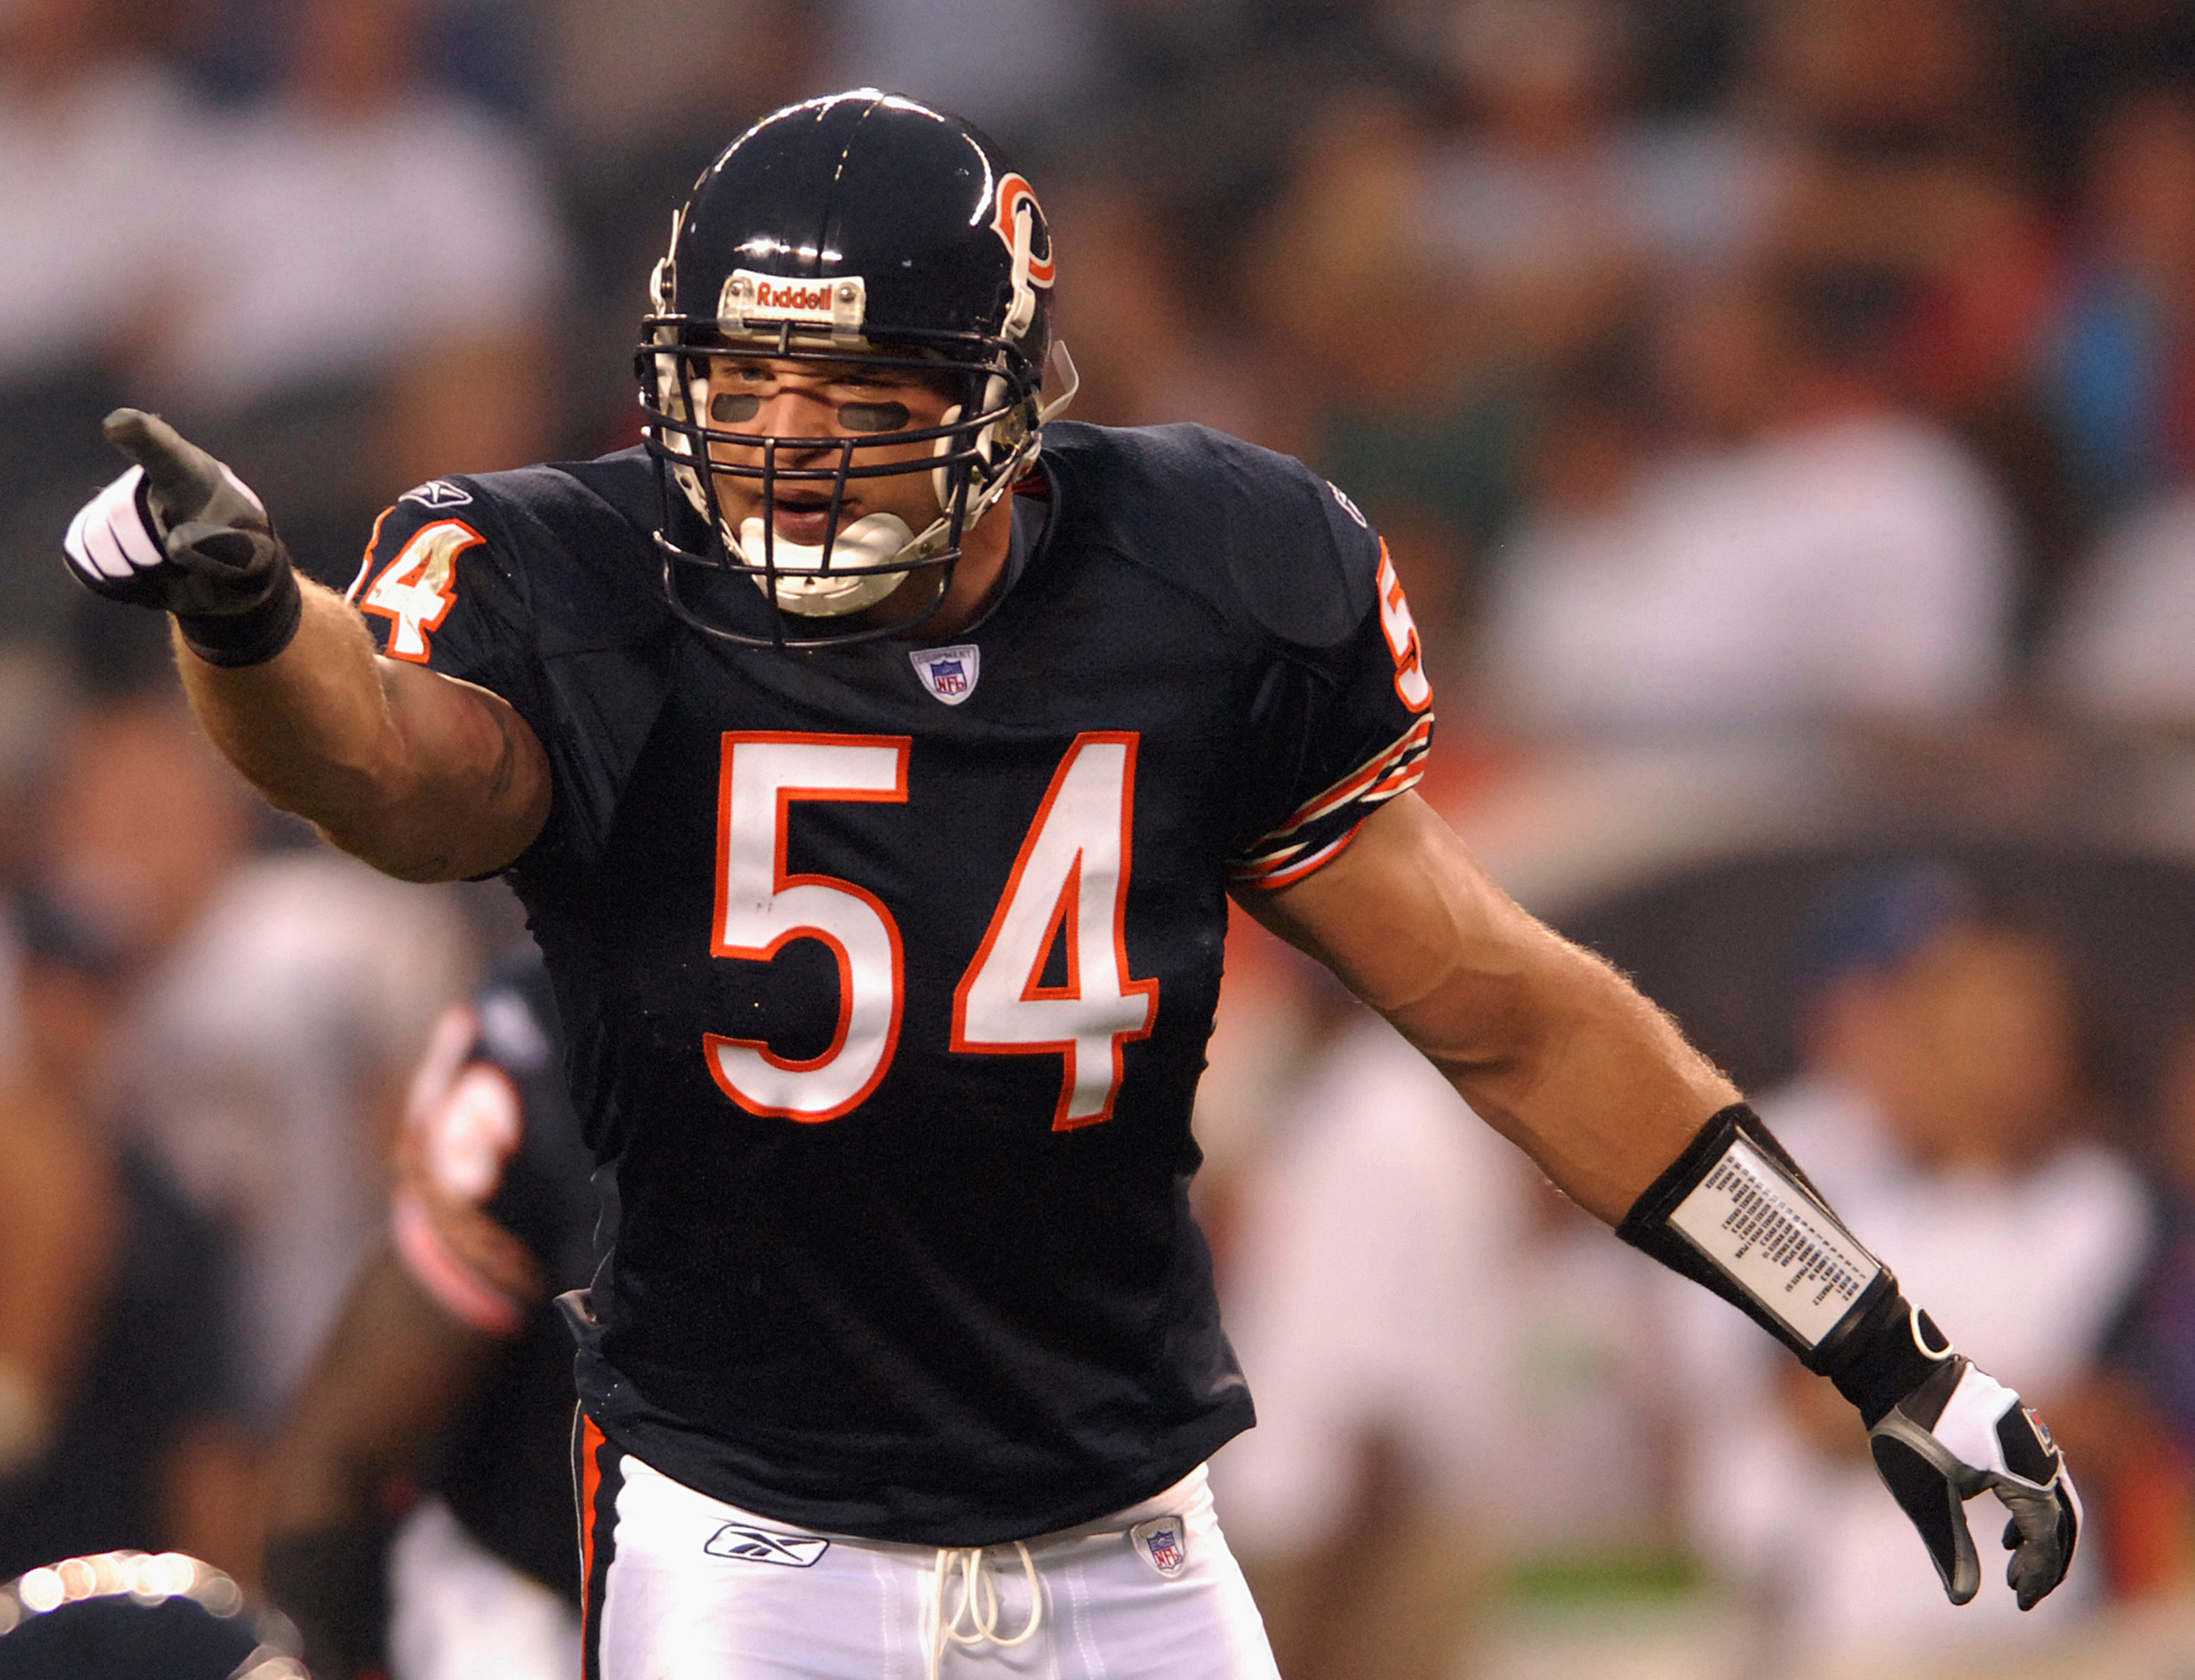 O Captain! My Captain! Brian Urlacher Should Suit Up for the Pro Bowl